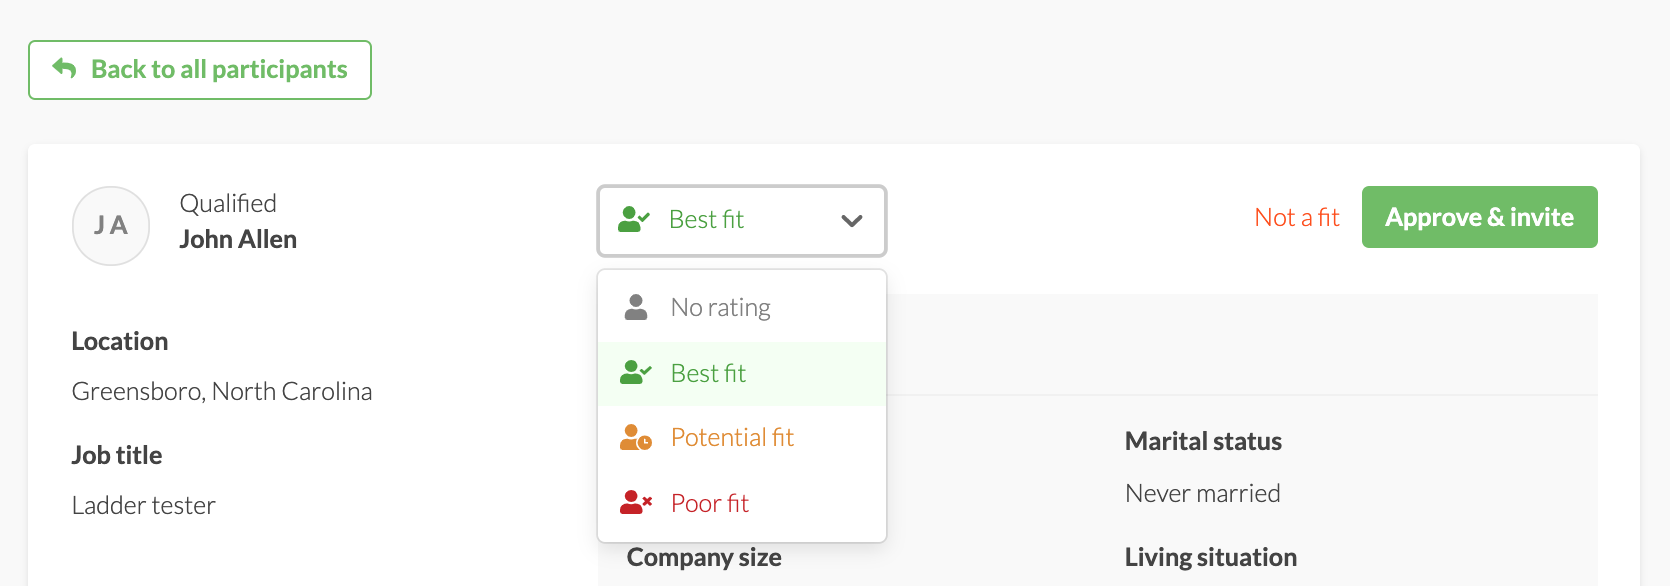 Rating dropdown in an individual participant profile.